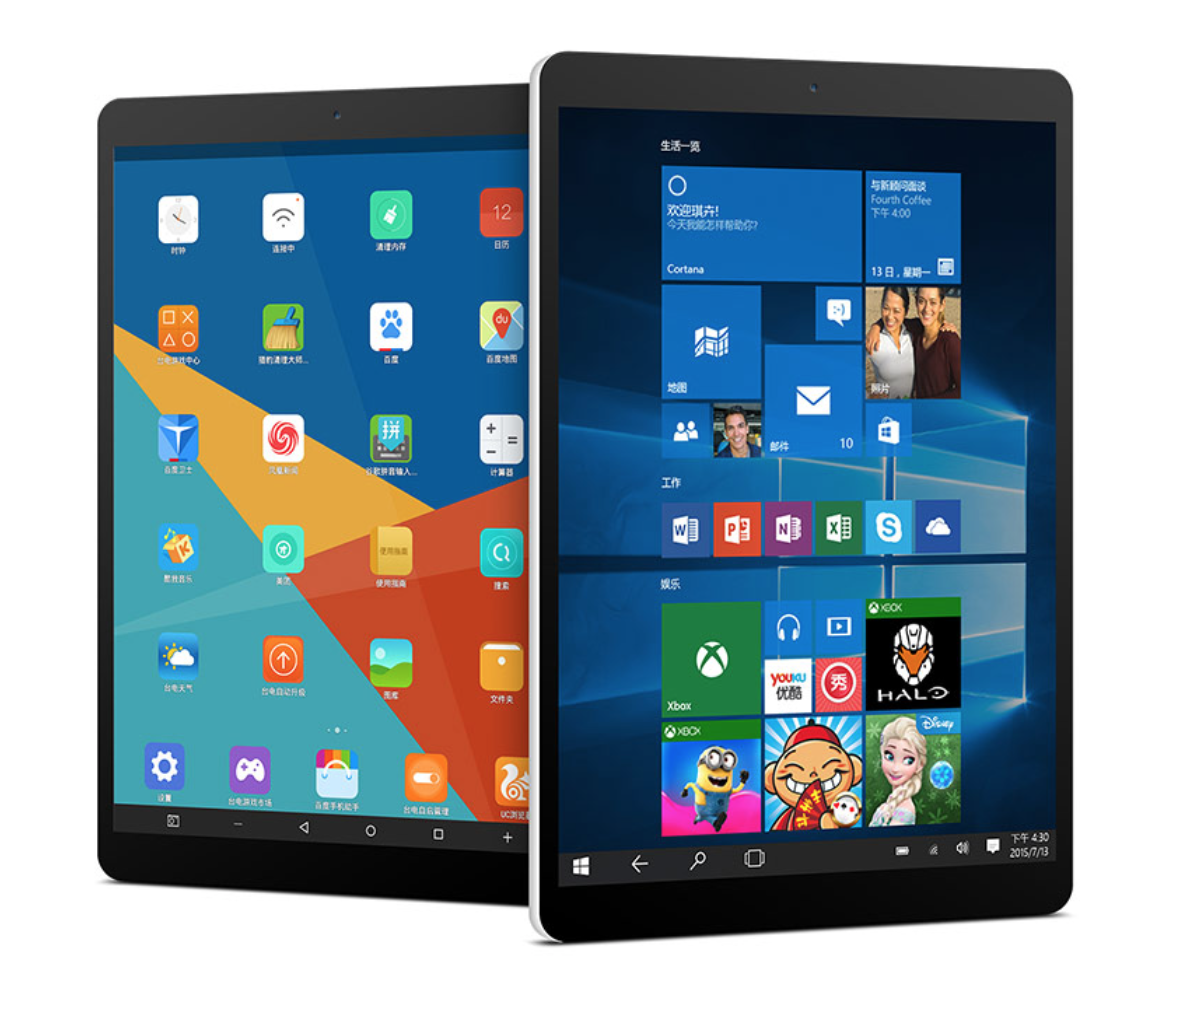 Teclast X89 Kindow E book Reader 7.5 inch Dual OS Windows 10 & Android 4.4Intel Bay Trail Z3735F 2G + 32G Quad Core Tablet PC